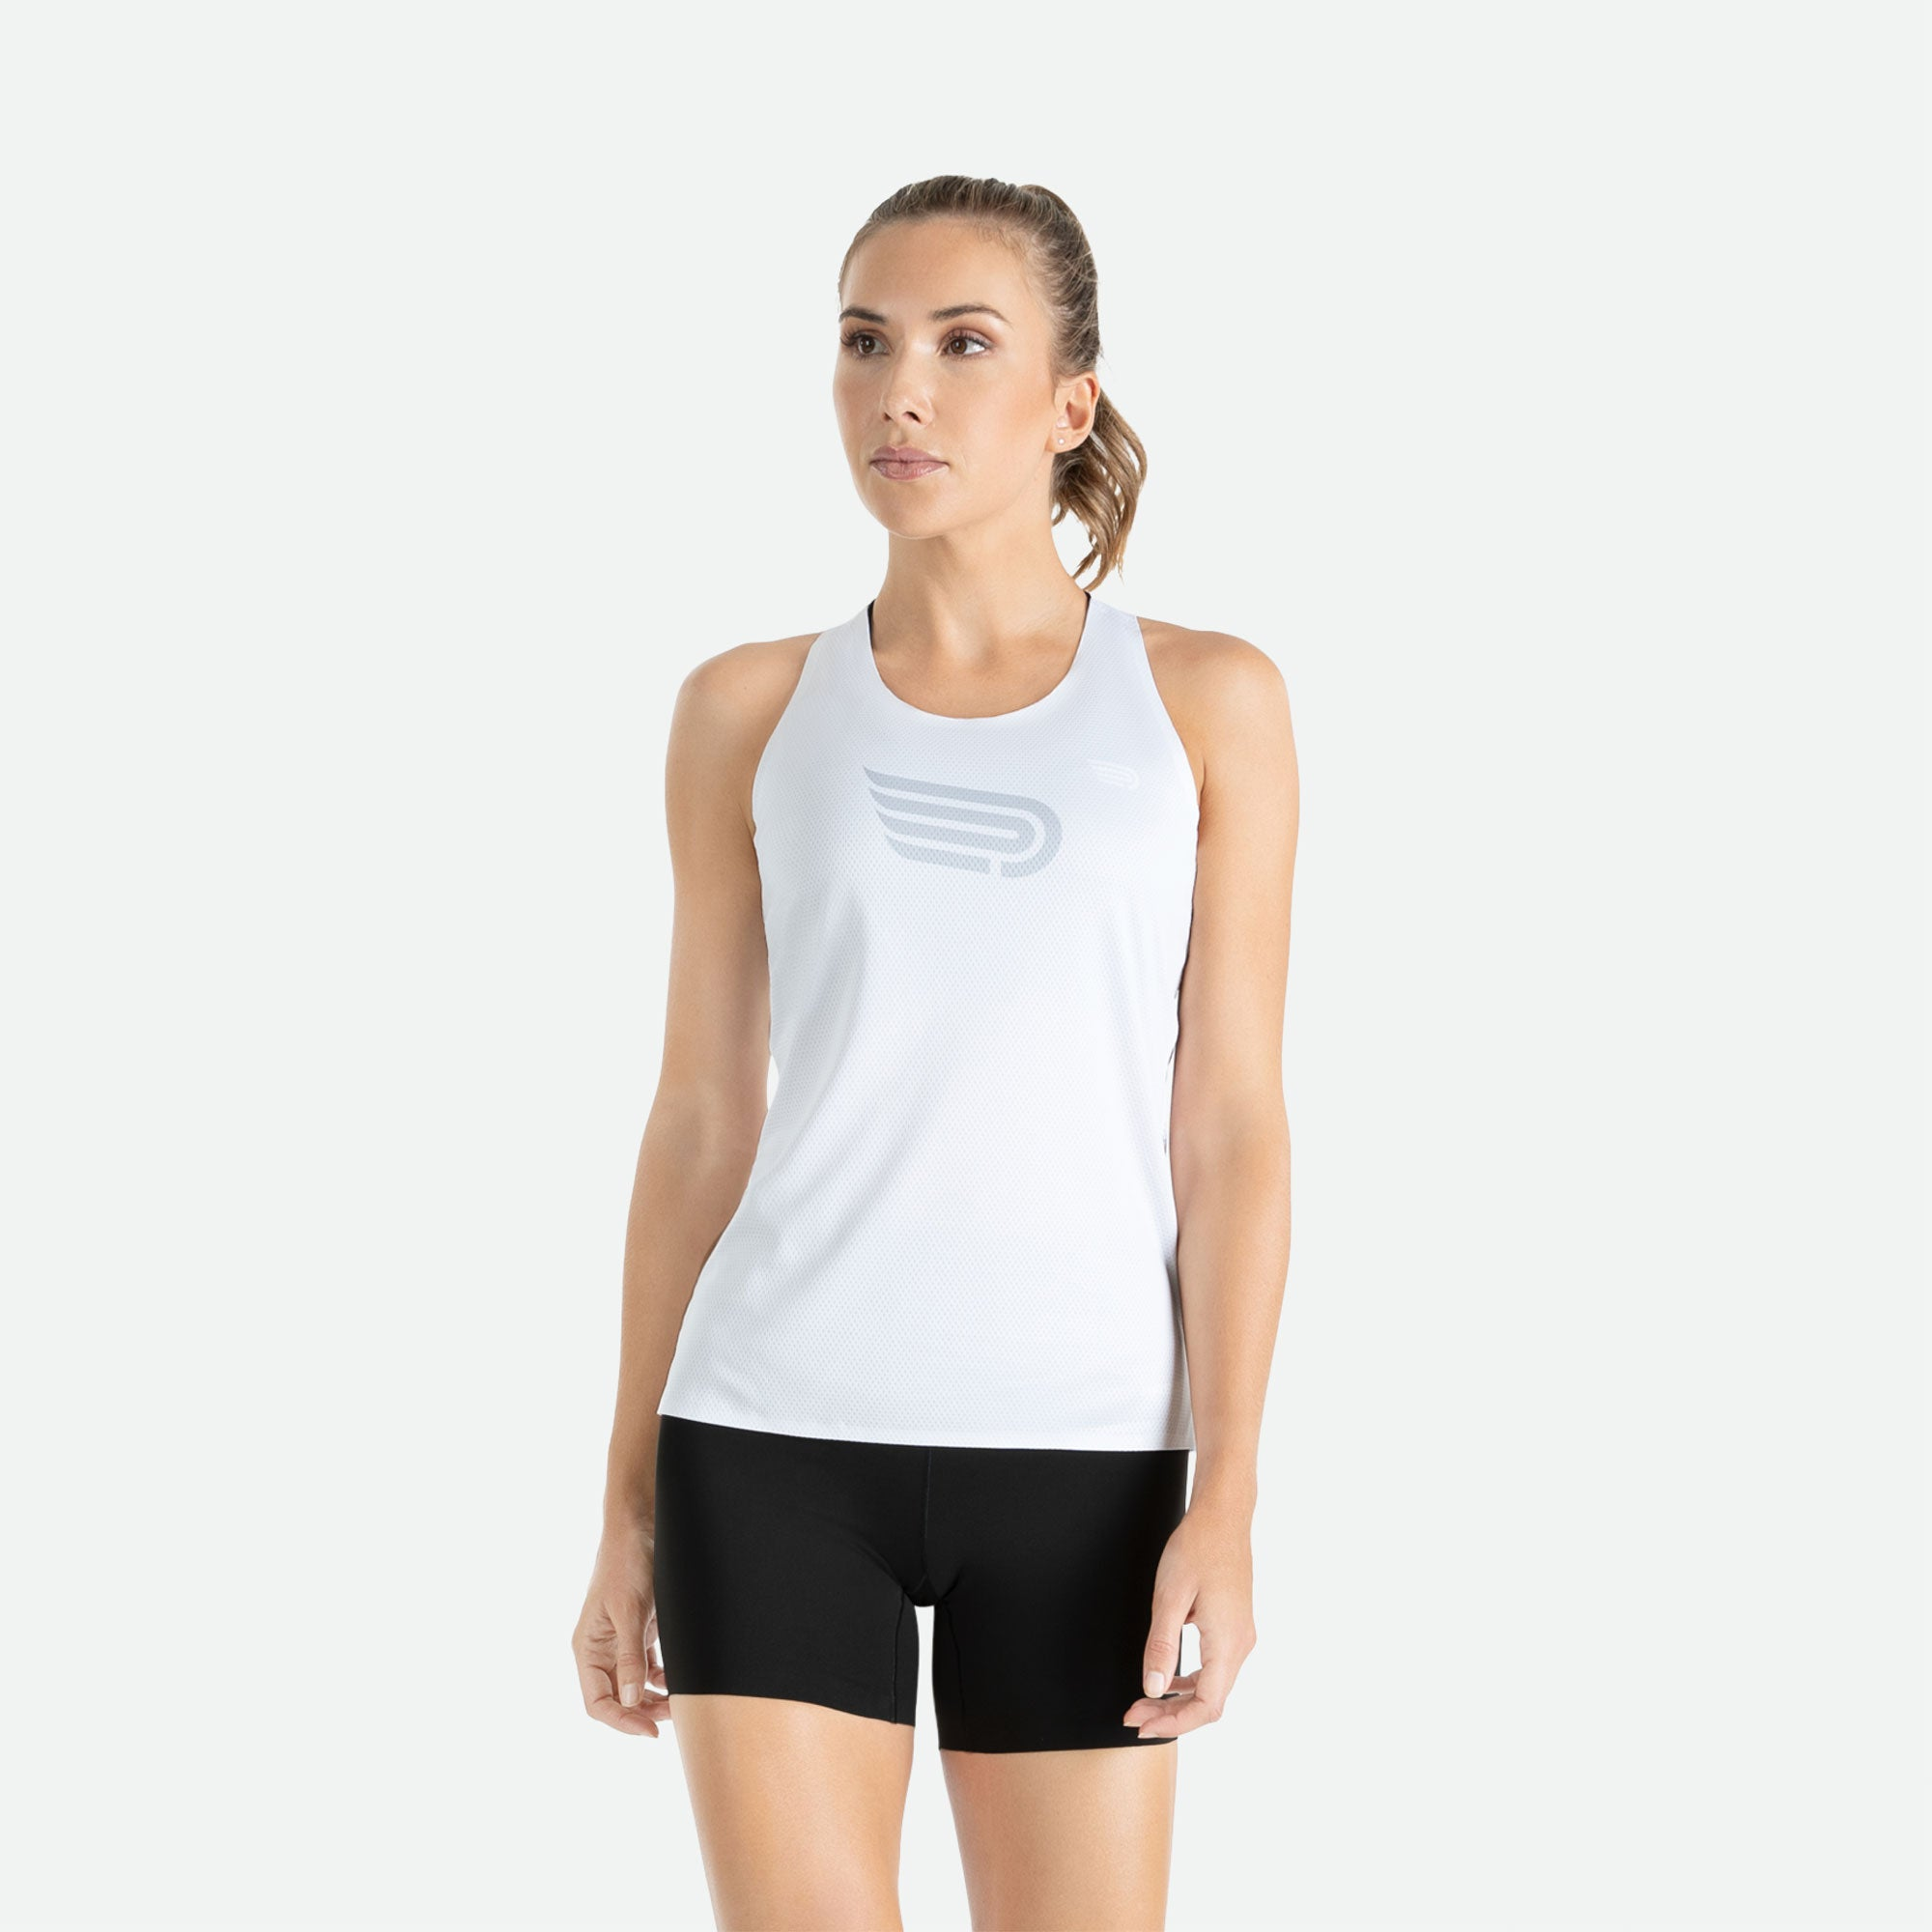 Engineered 3D vent mesh structure for optimal ventilation on the back of our Pressio women's Ārahi white/light grey singlet.